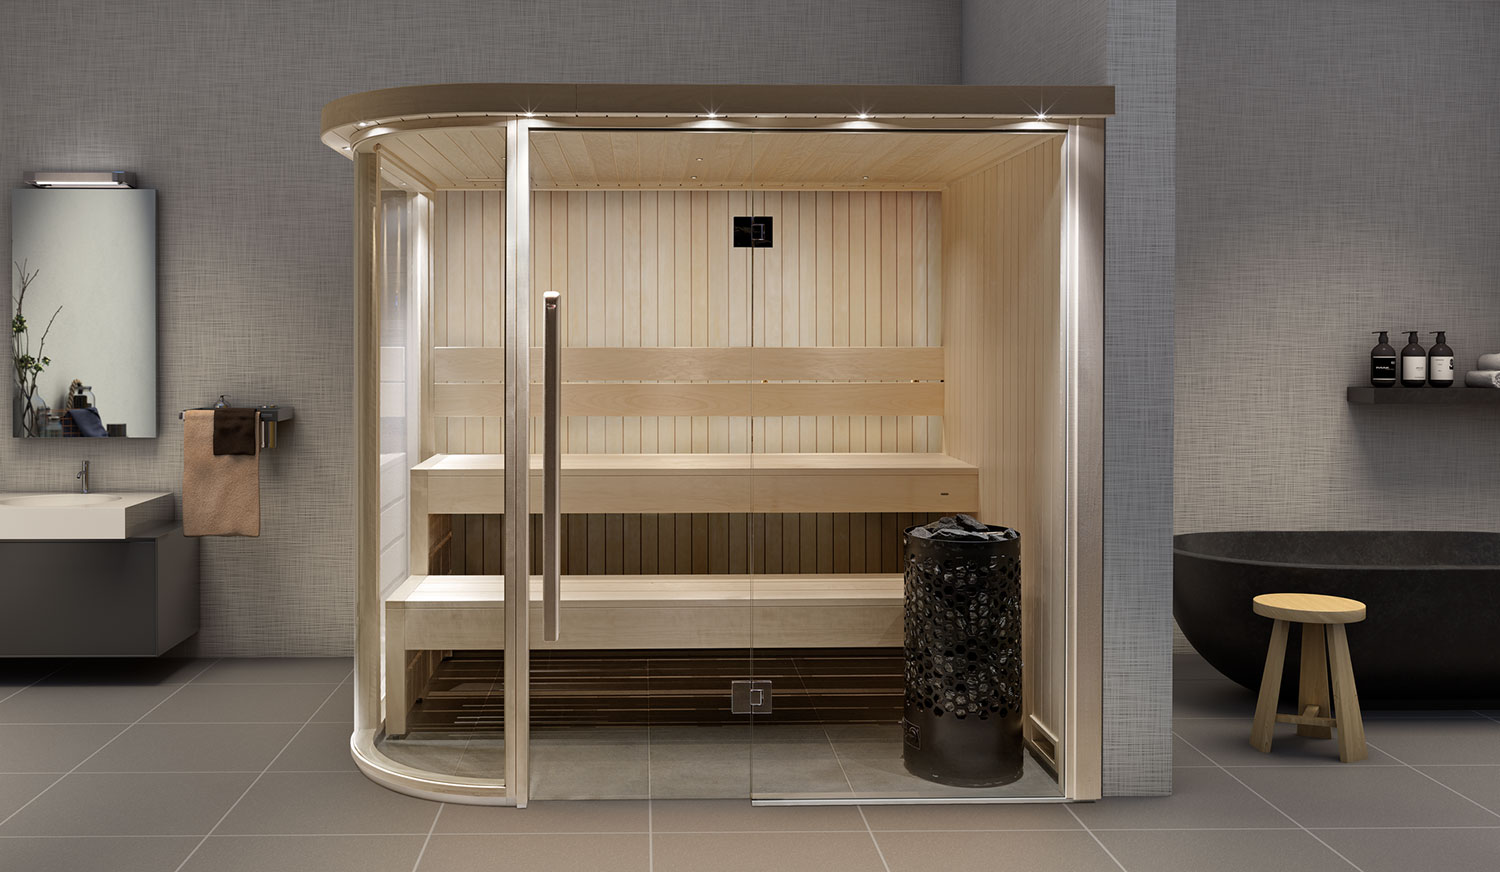 An indoor sauna installed in a bathroom